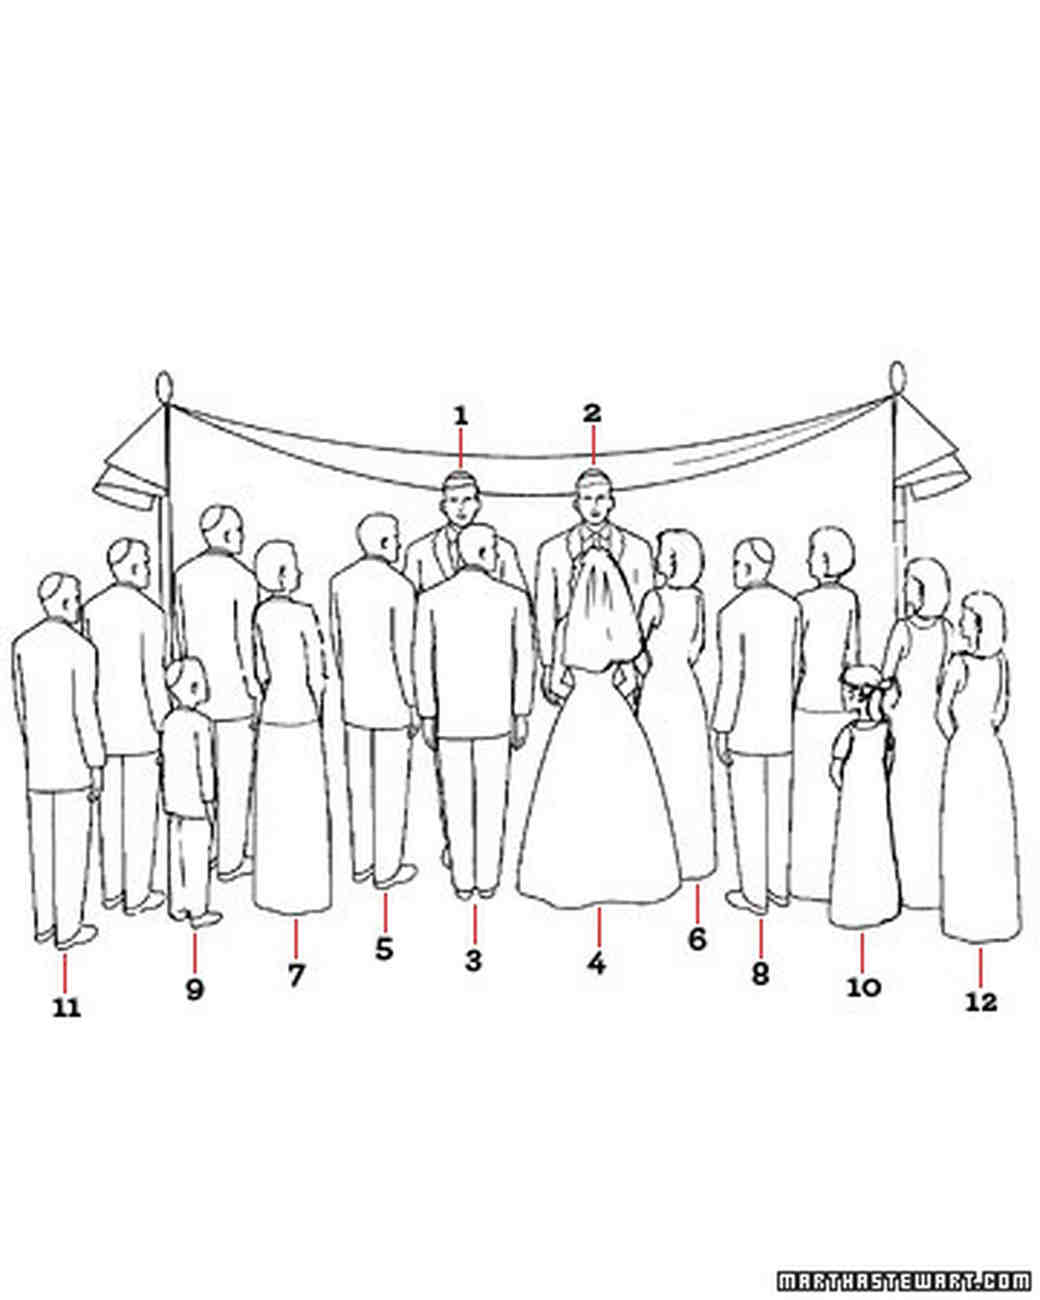 Diagram Your Big Day: Jewish Wedding Ceremony Basics